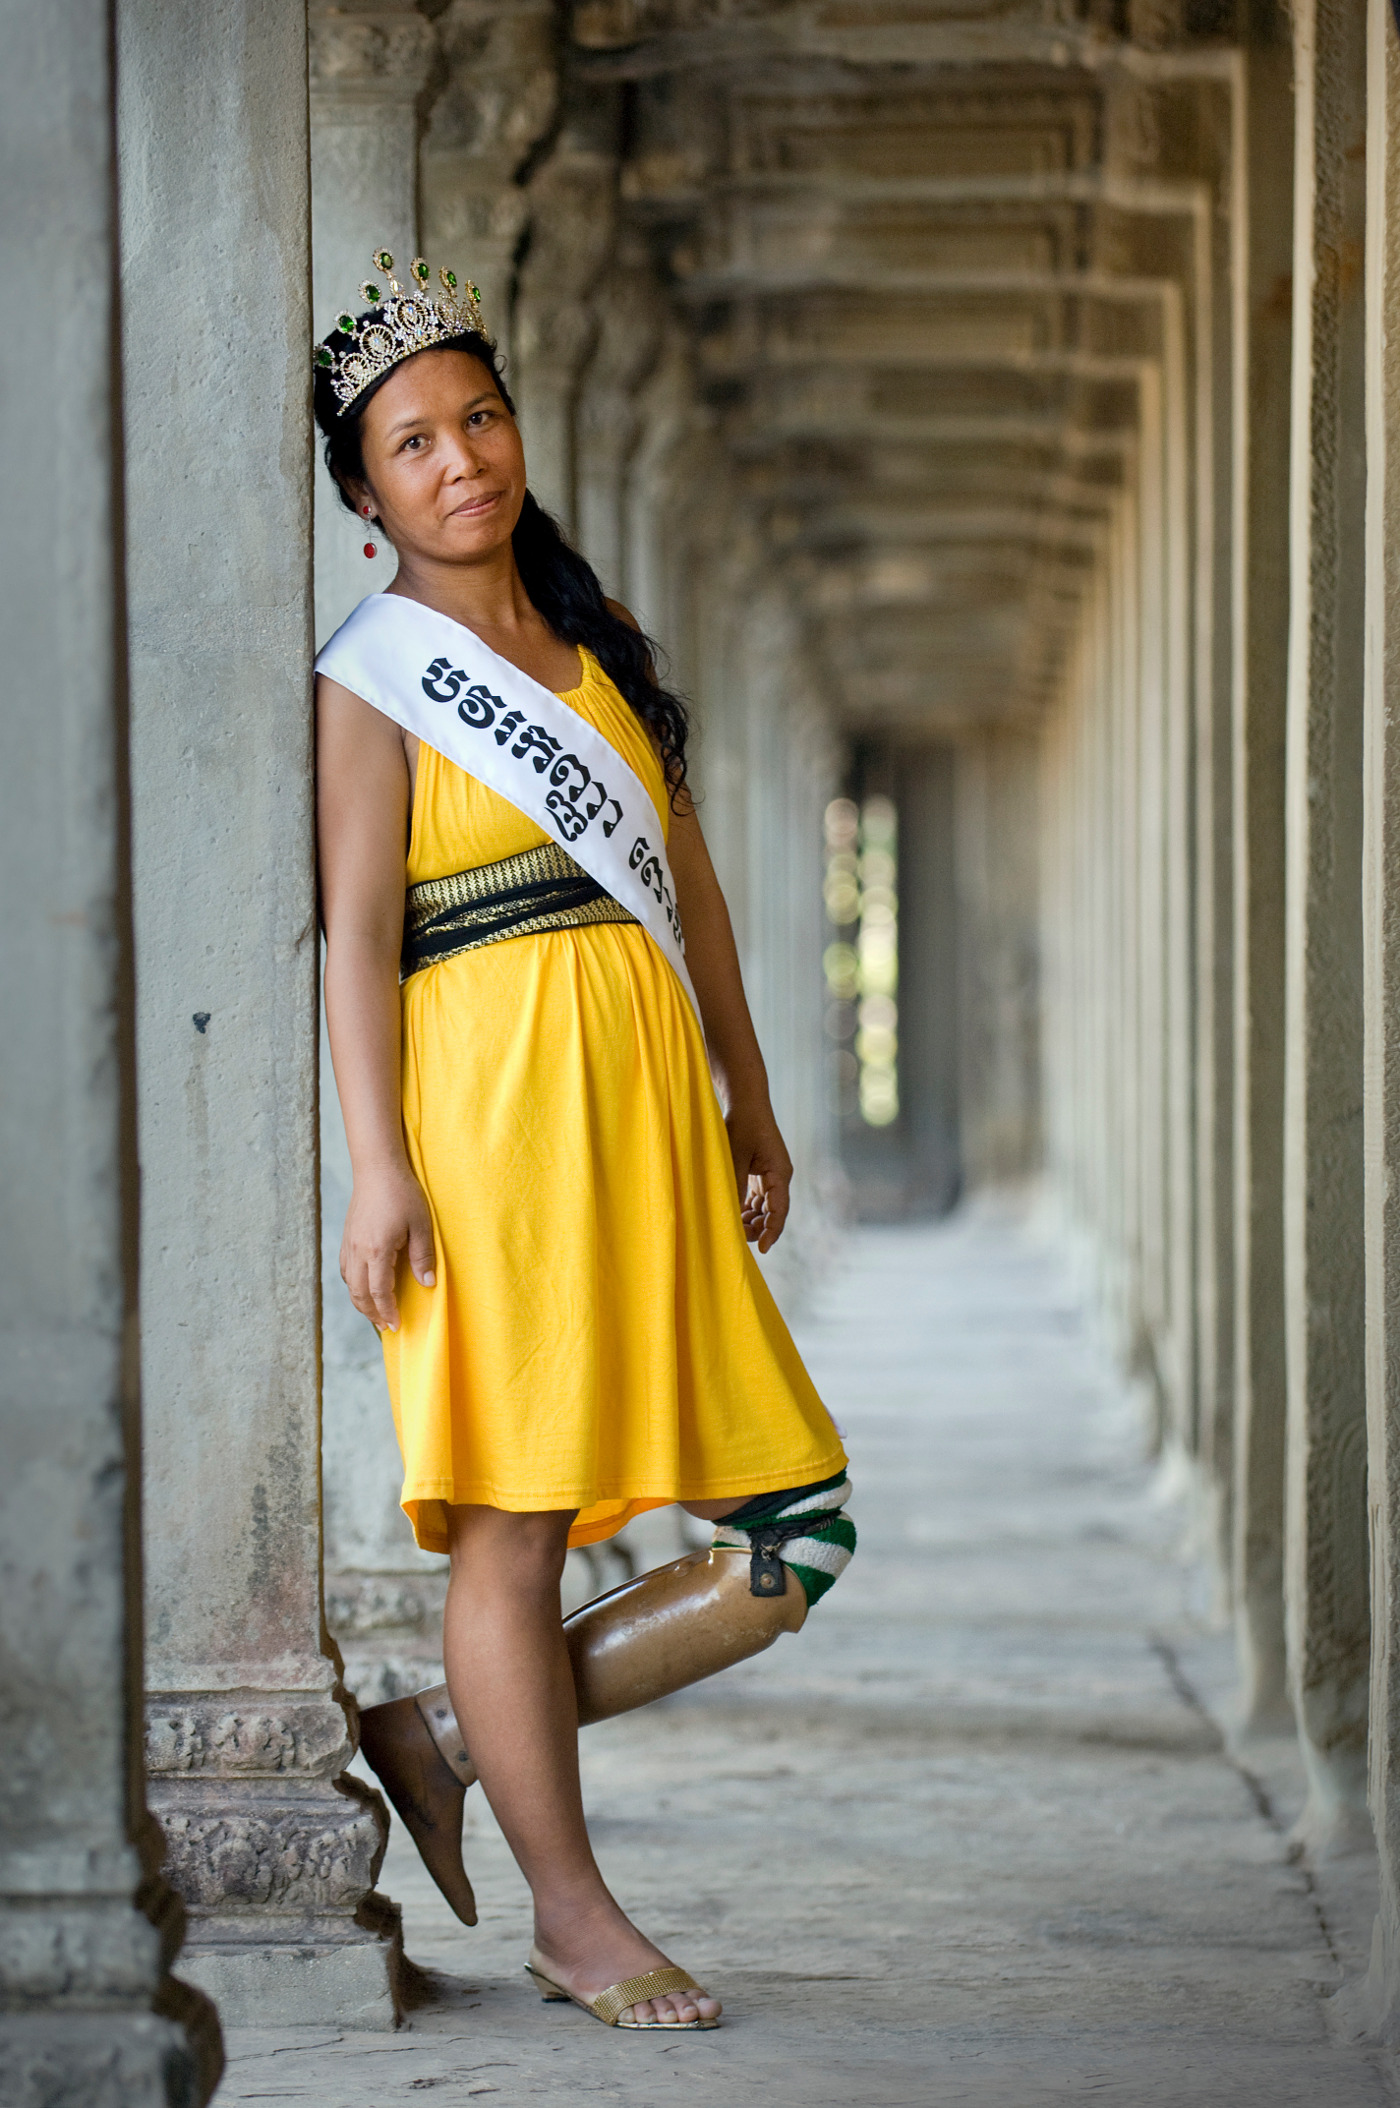 Miss Landmine: The beauty pageant with a difference